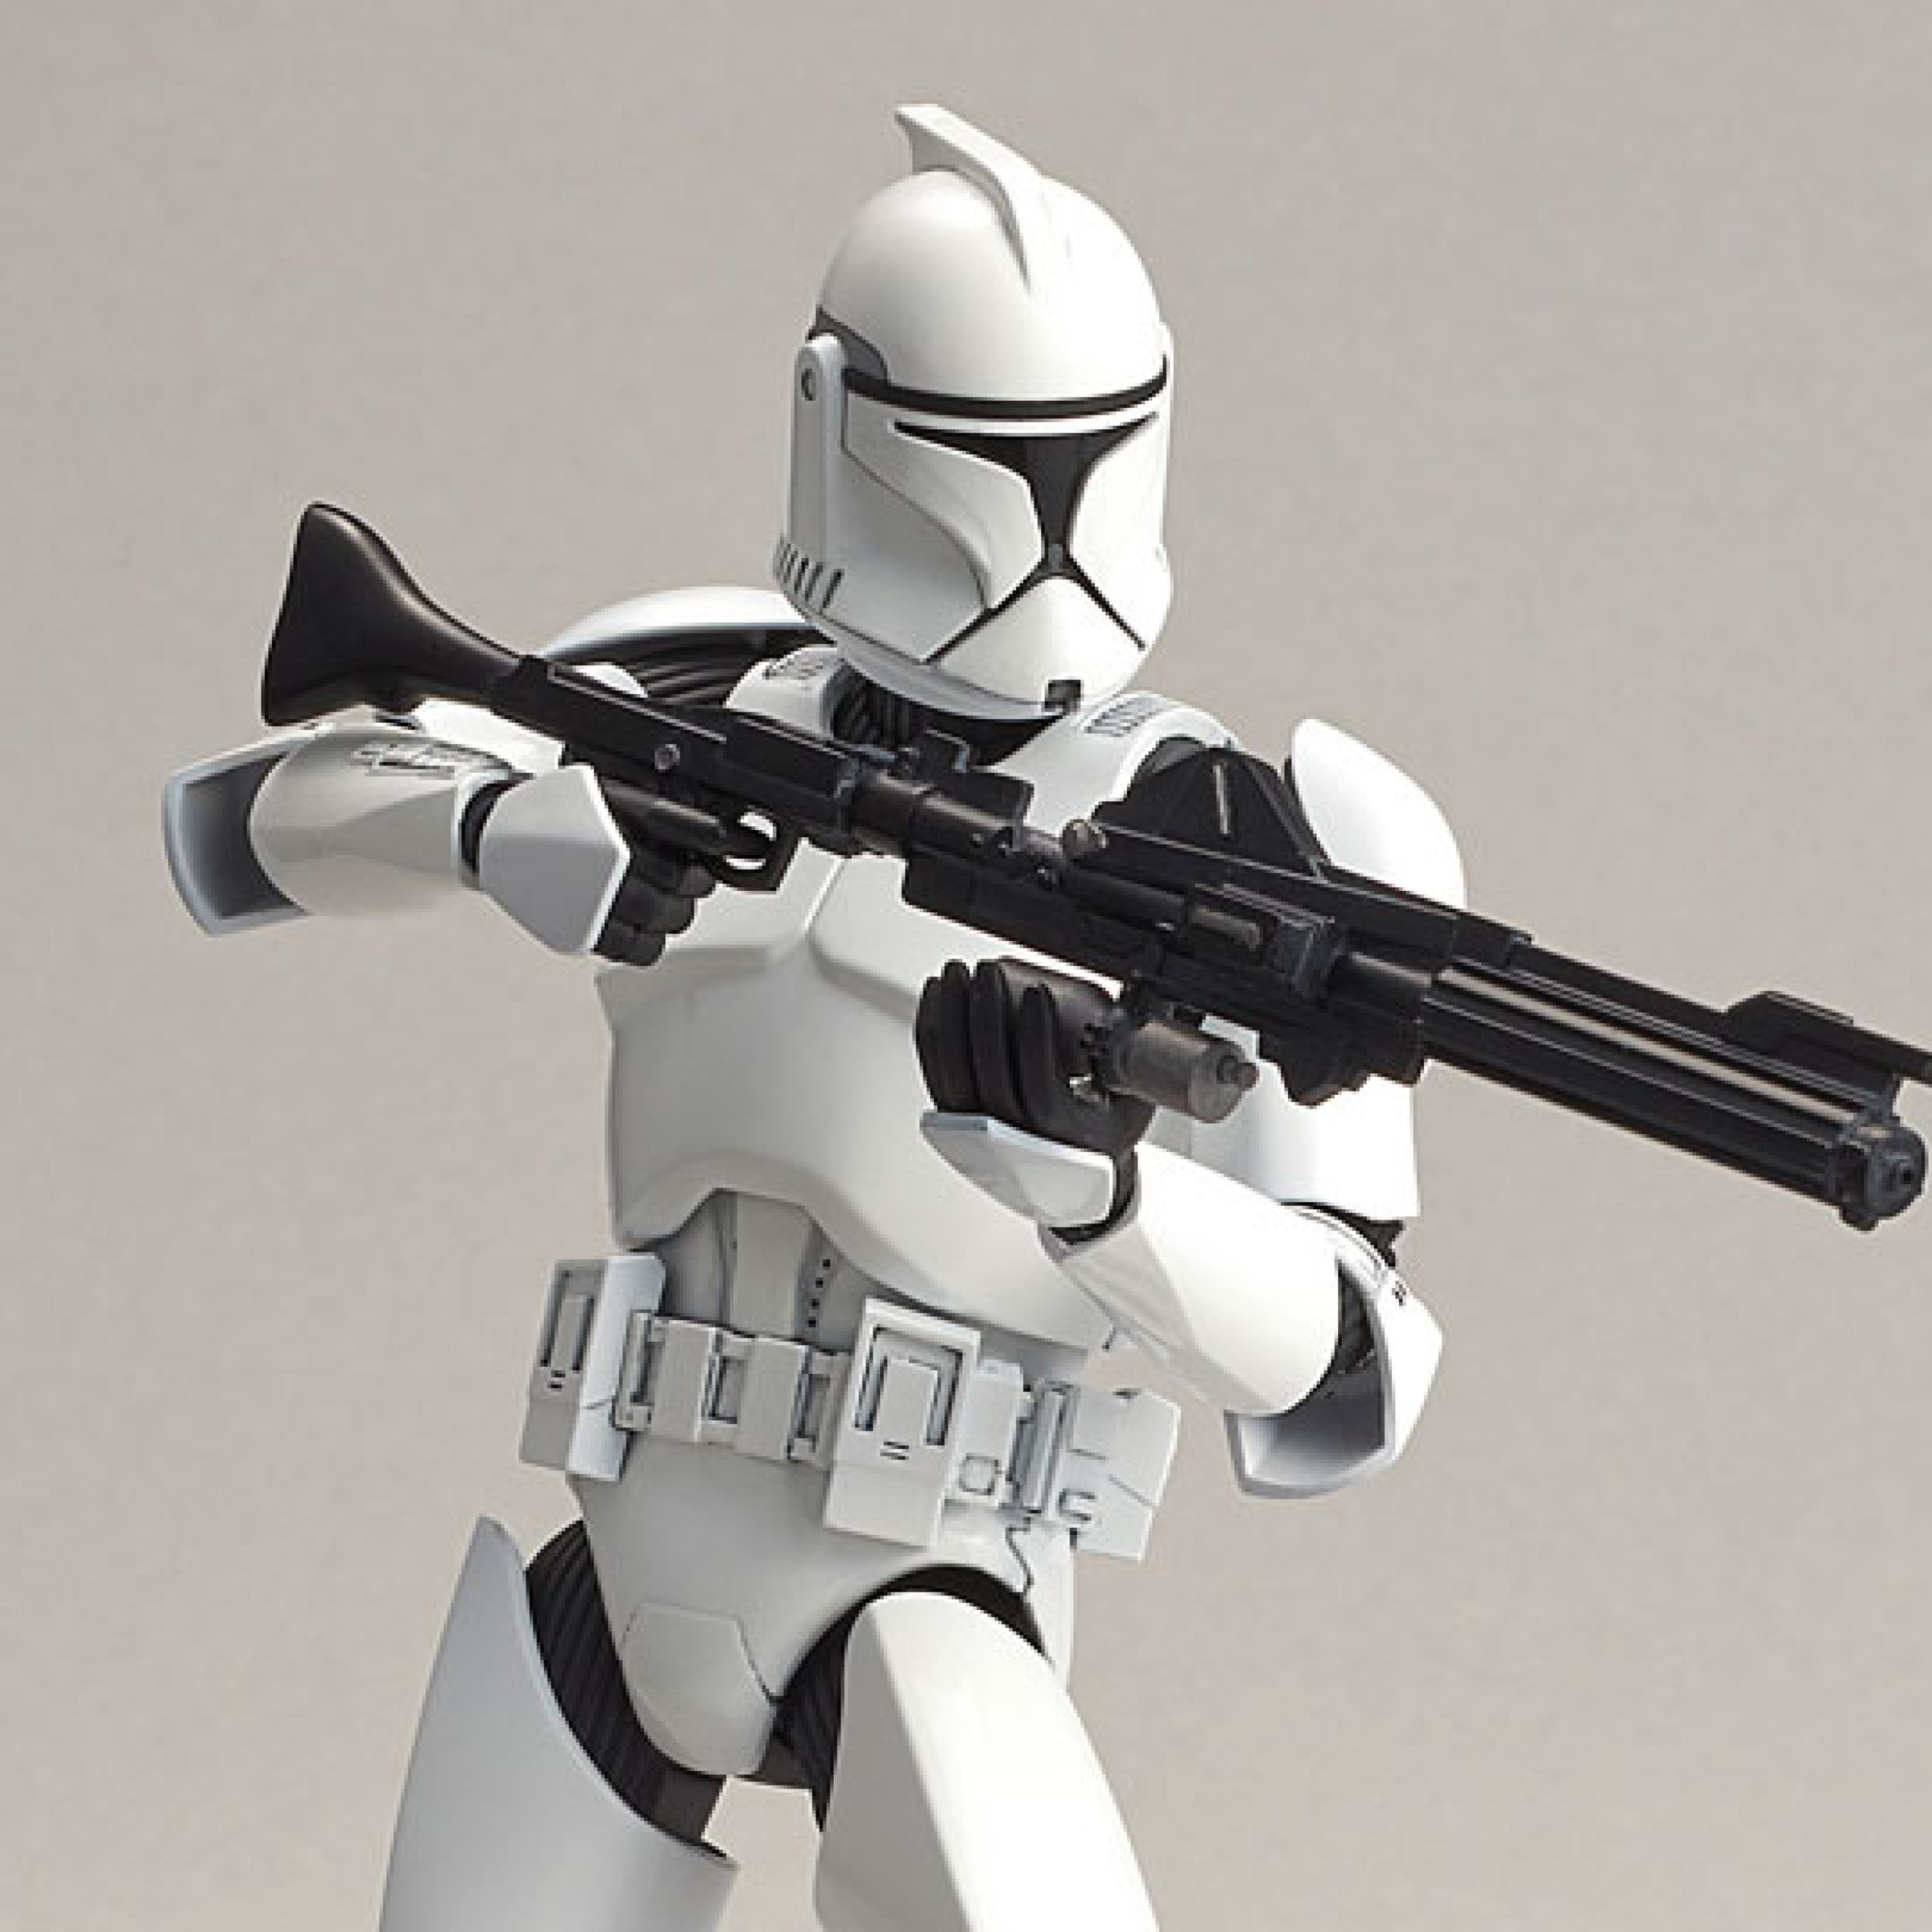 bdmk-2400-sp-star-wars-1-12-clone-trooper-2.jpg